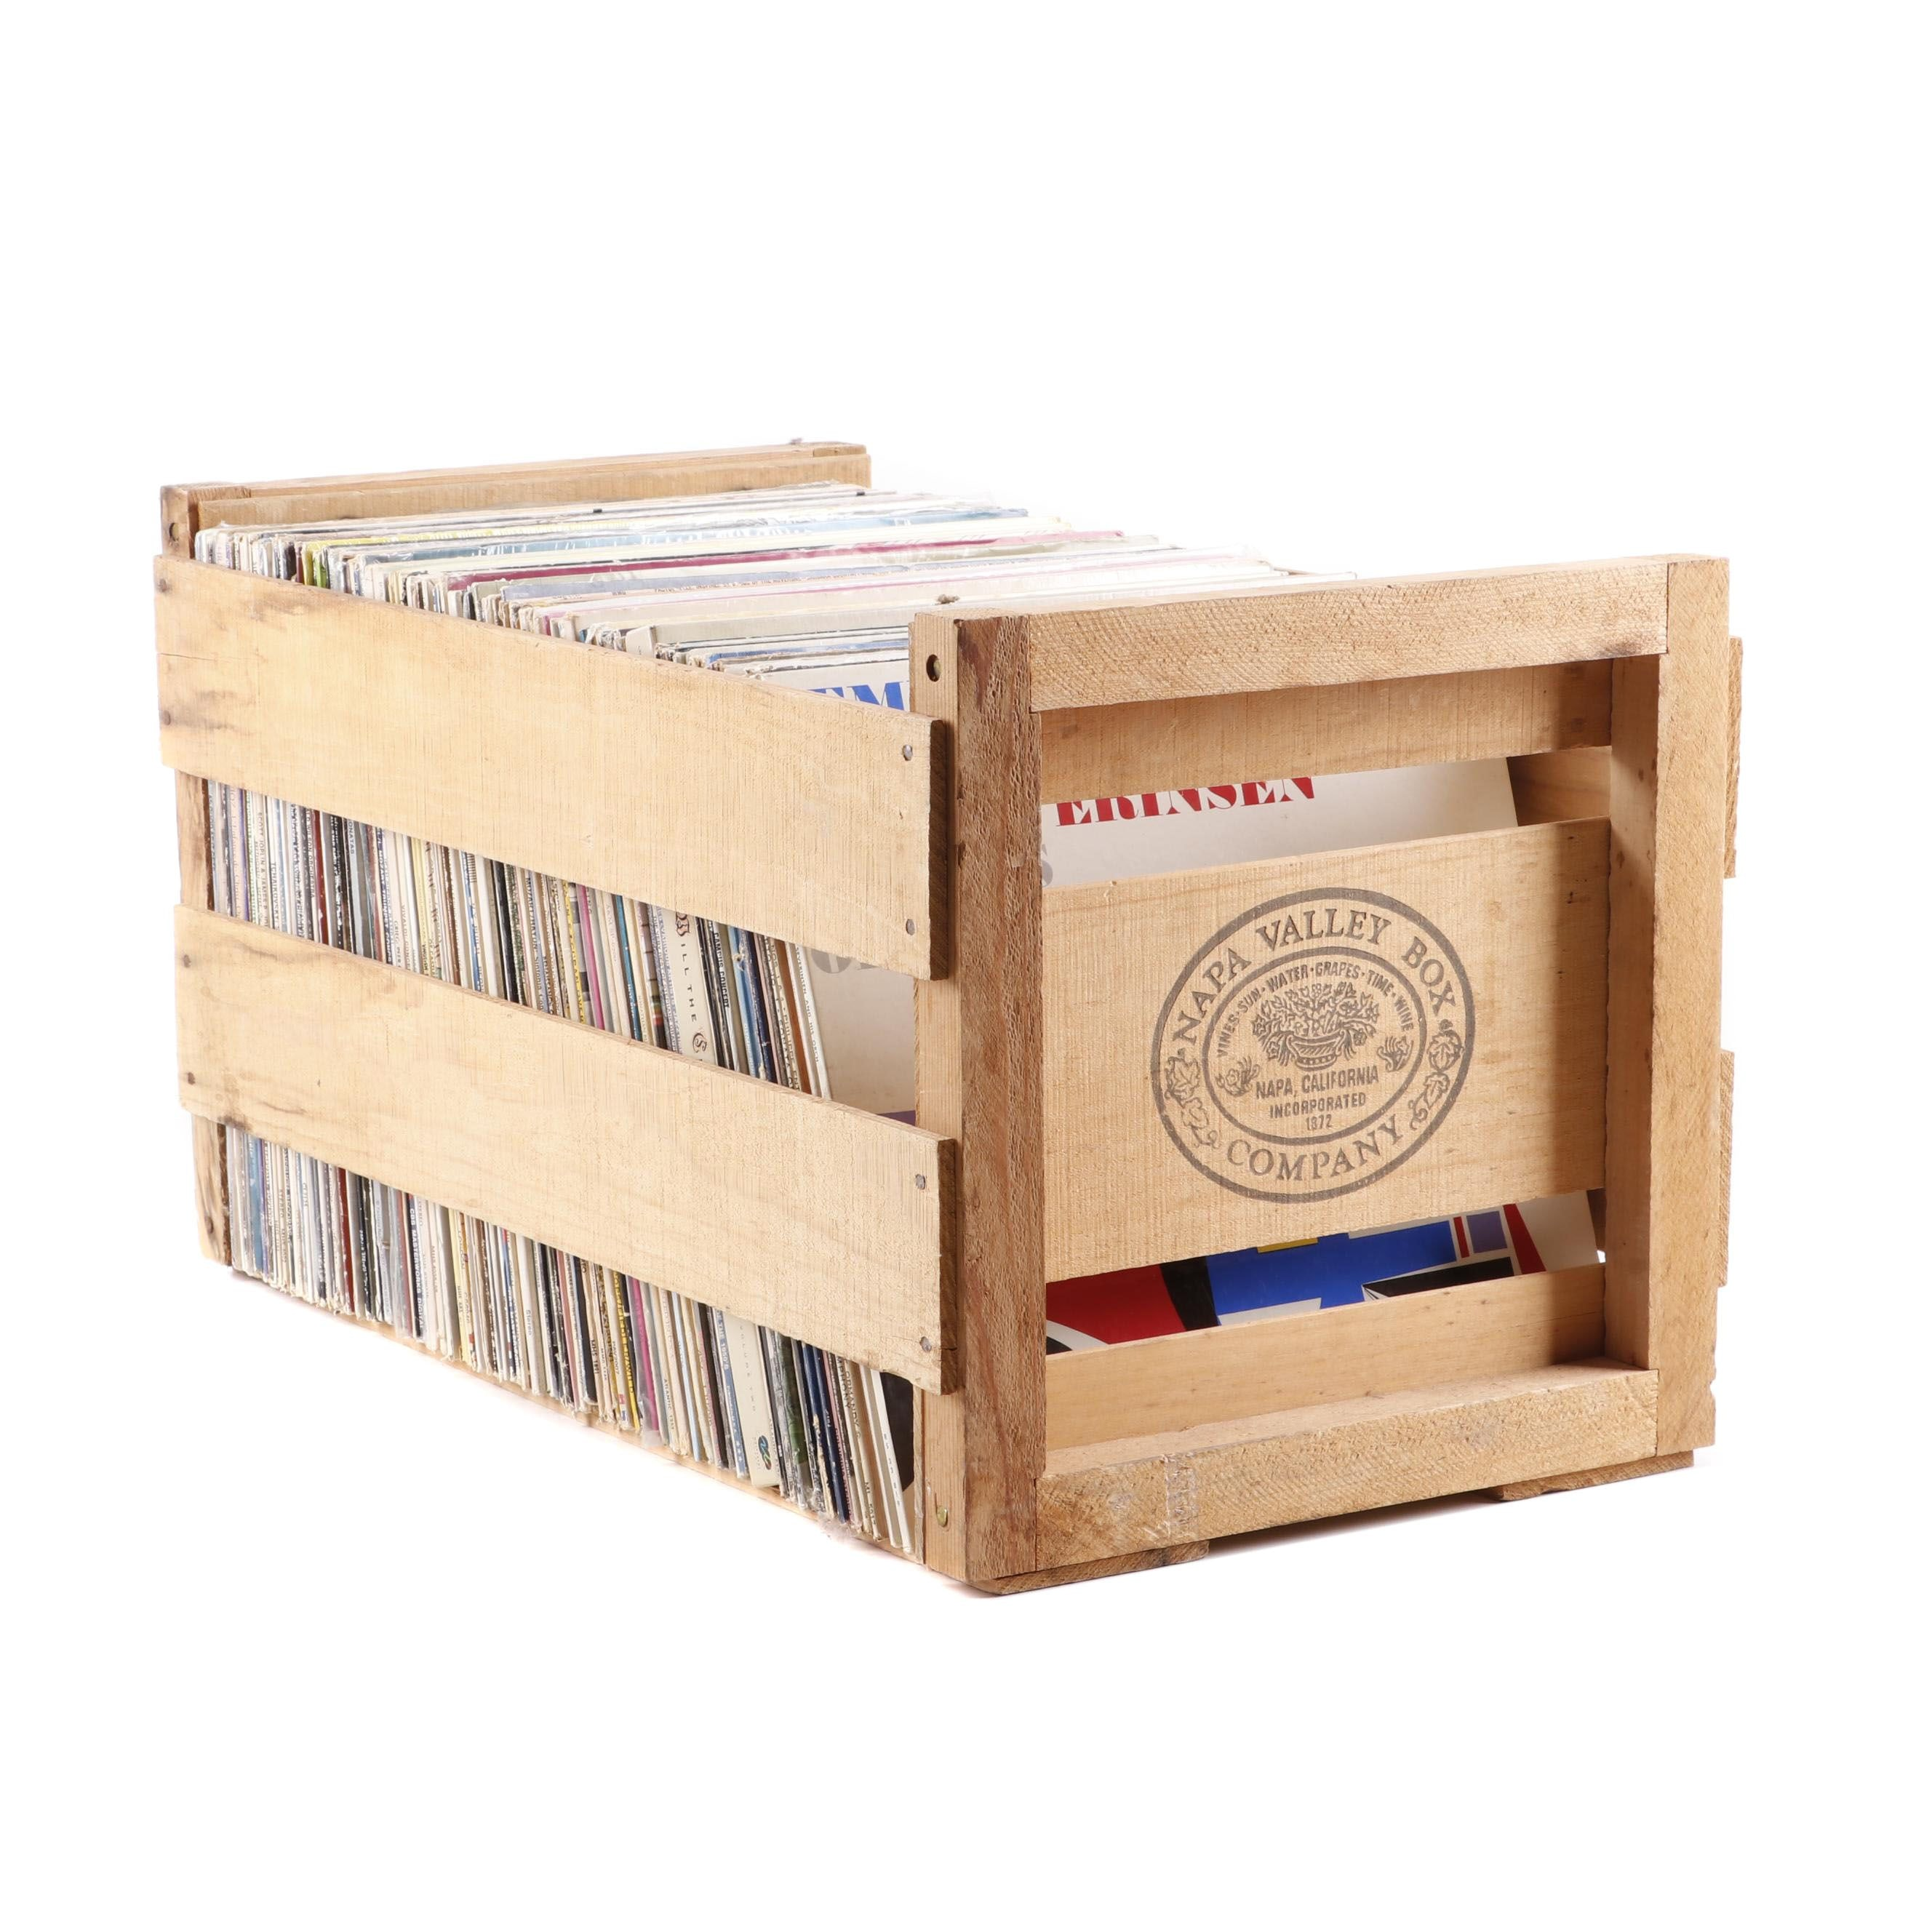 Records including Orchestral, Instrumental, Concert and More